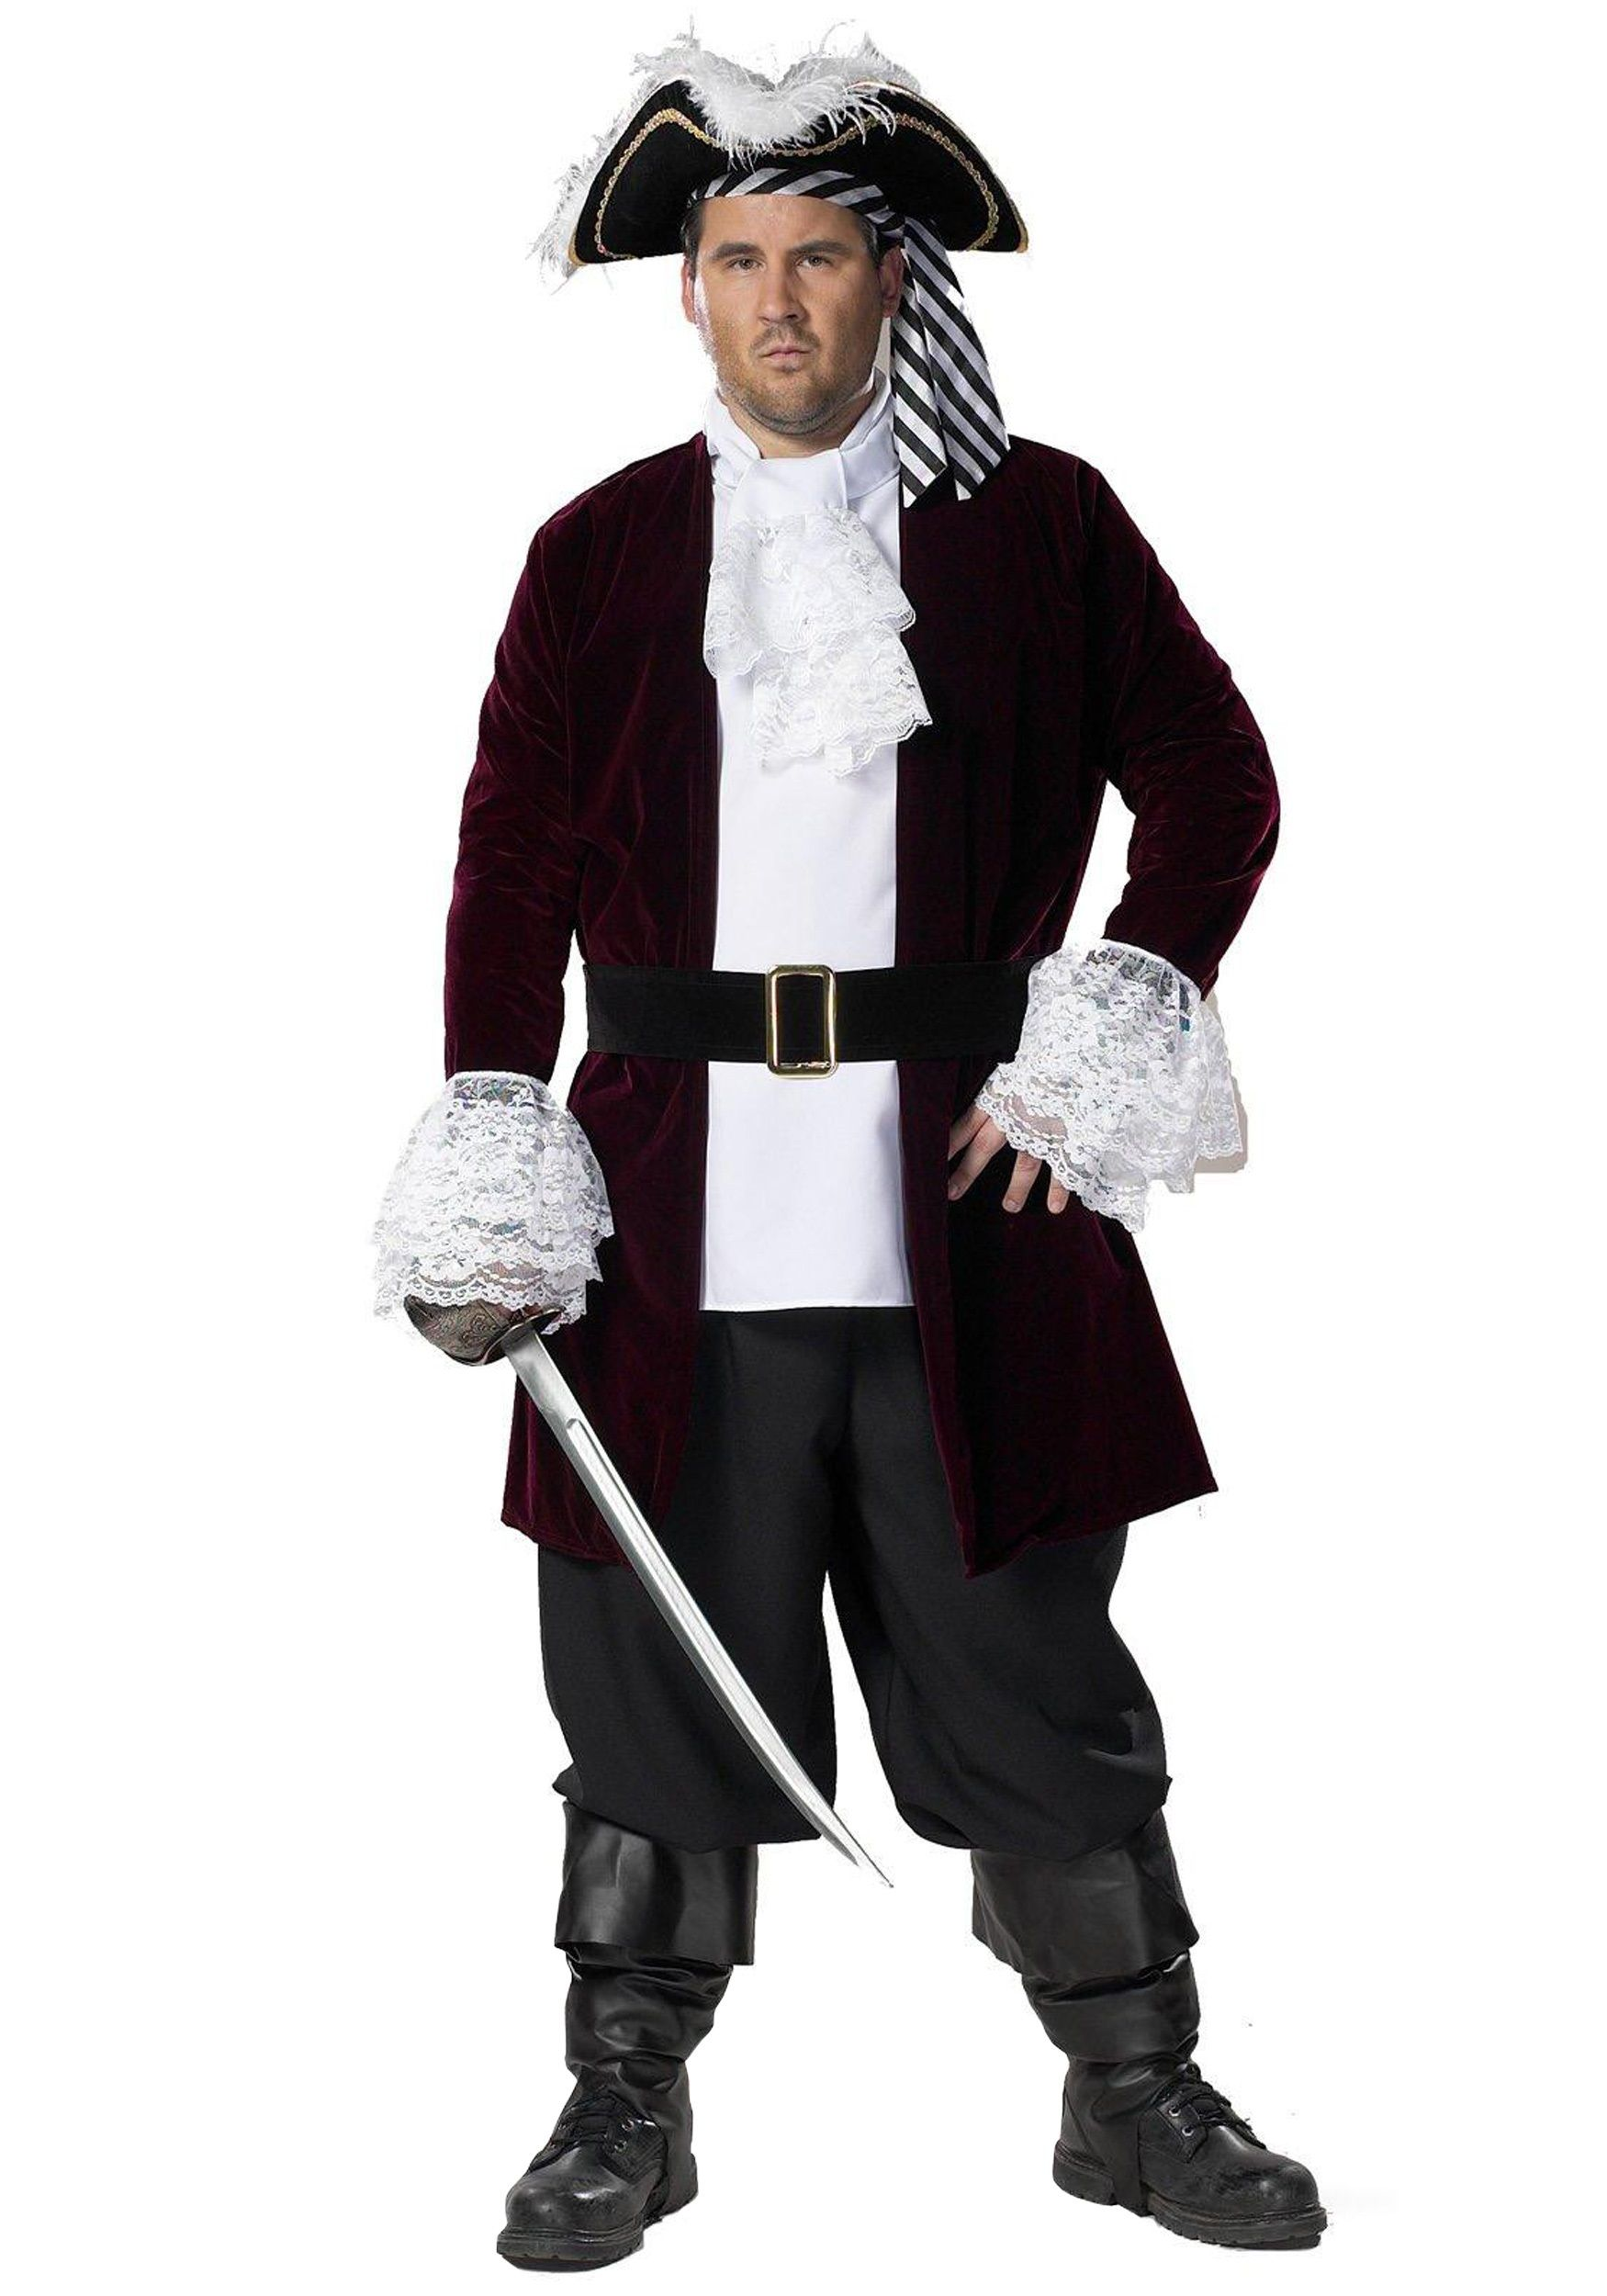 Adult Male Pirate Costumes | Pirate Costume Ideas Authentic Pirate ...